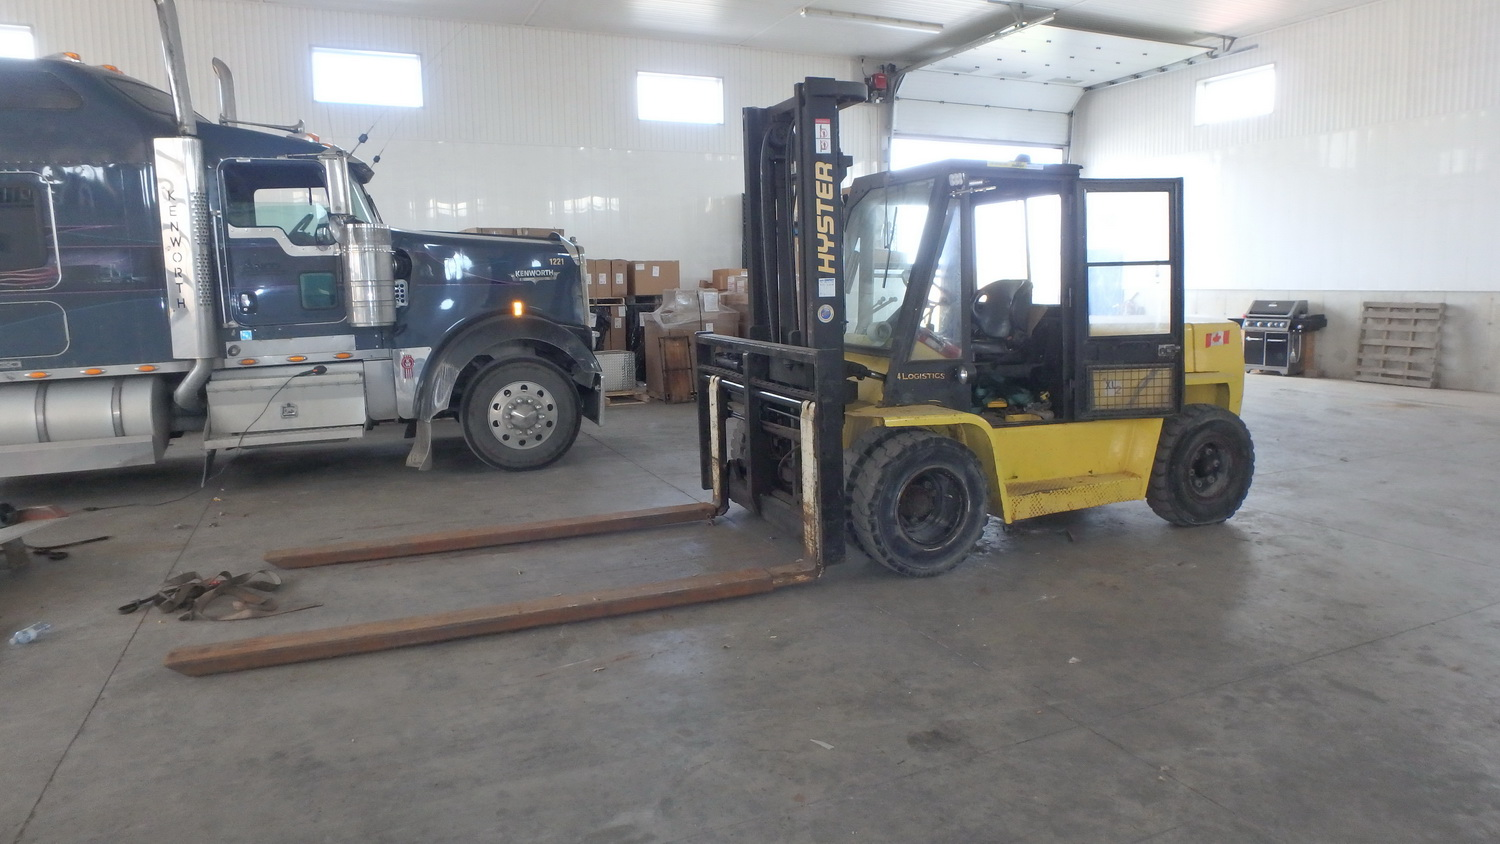 """HYSTER MODEL H155XL PROPANE POWERED ENCLOSED CAB FORKLIFT W/ 14,500LBS CAP., 134"""" LIFT, SIDE SHIFT - Image 2 of 5"""